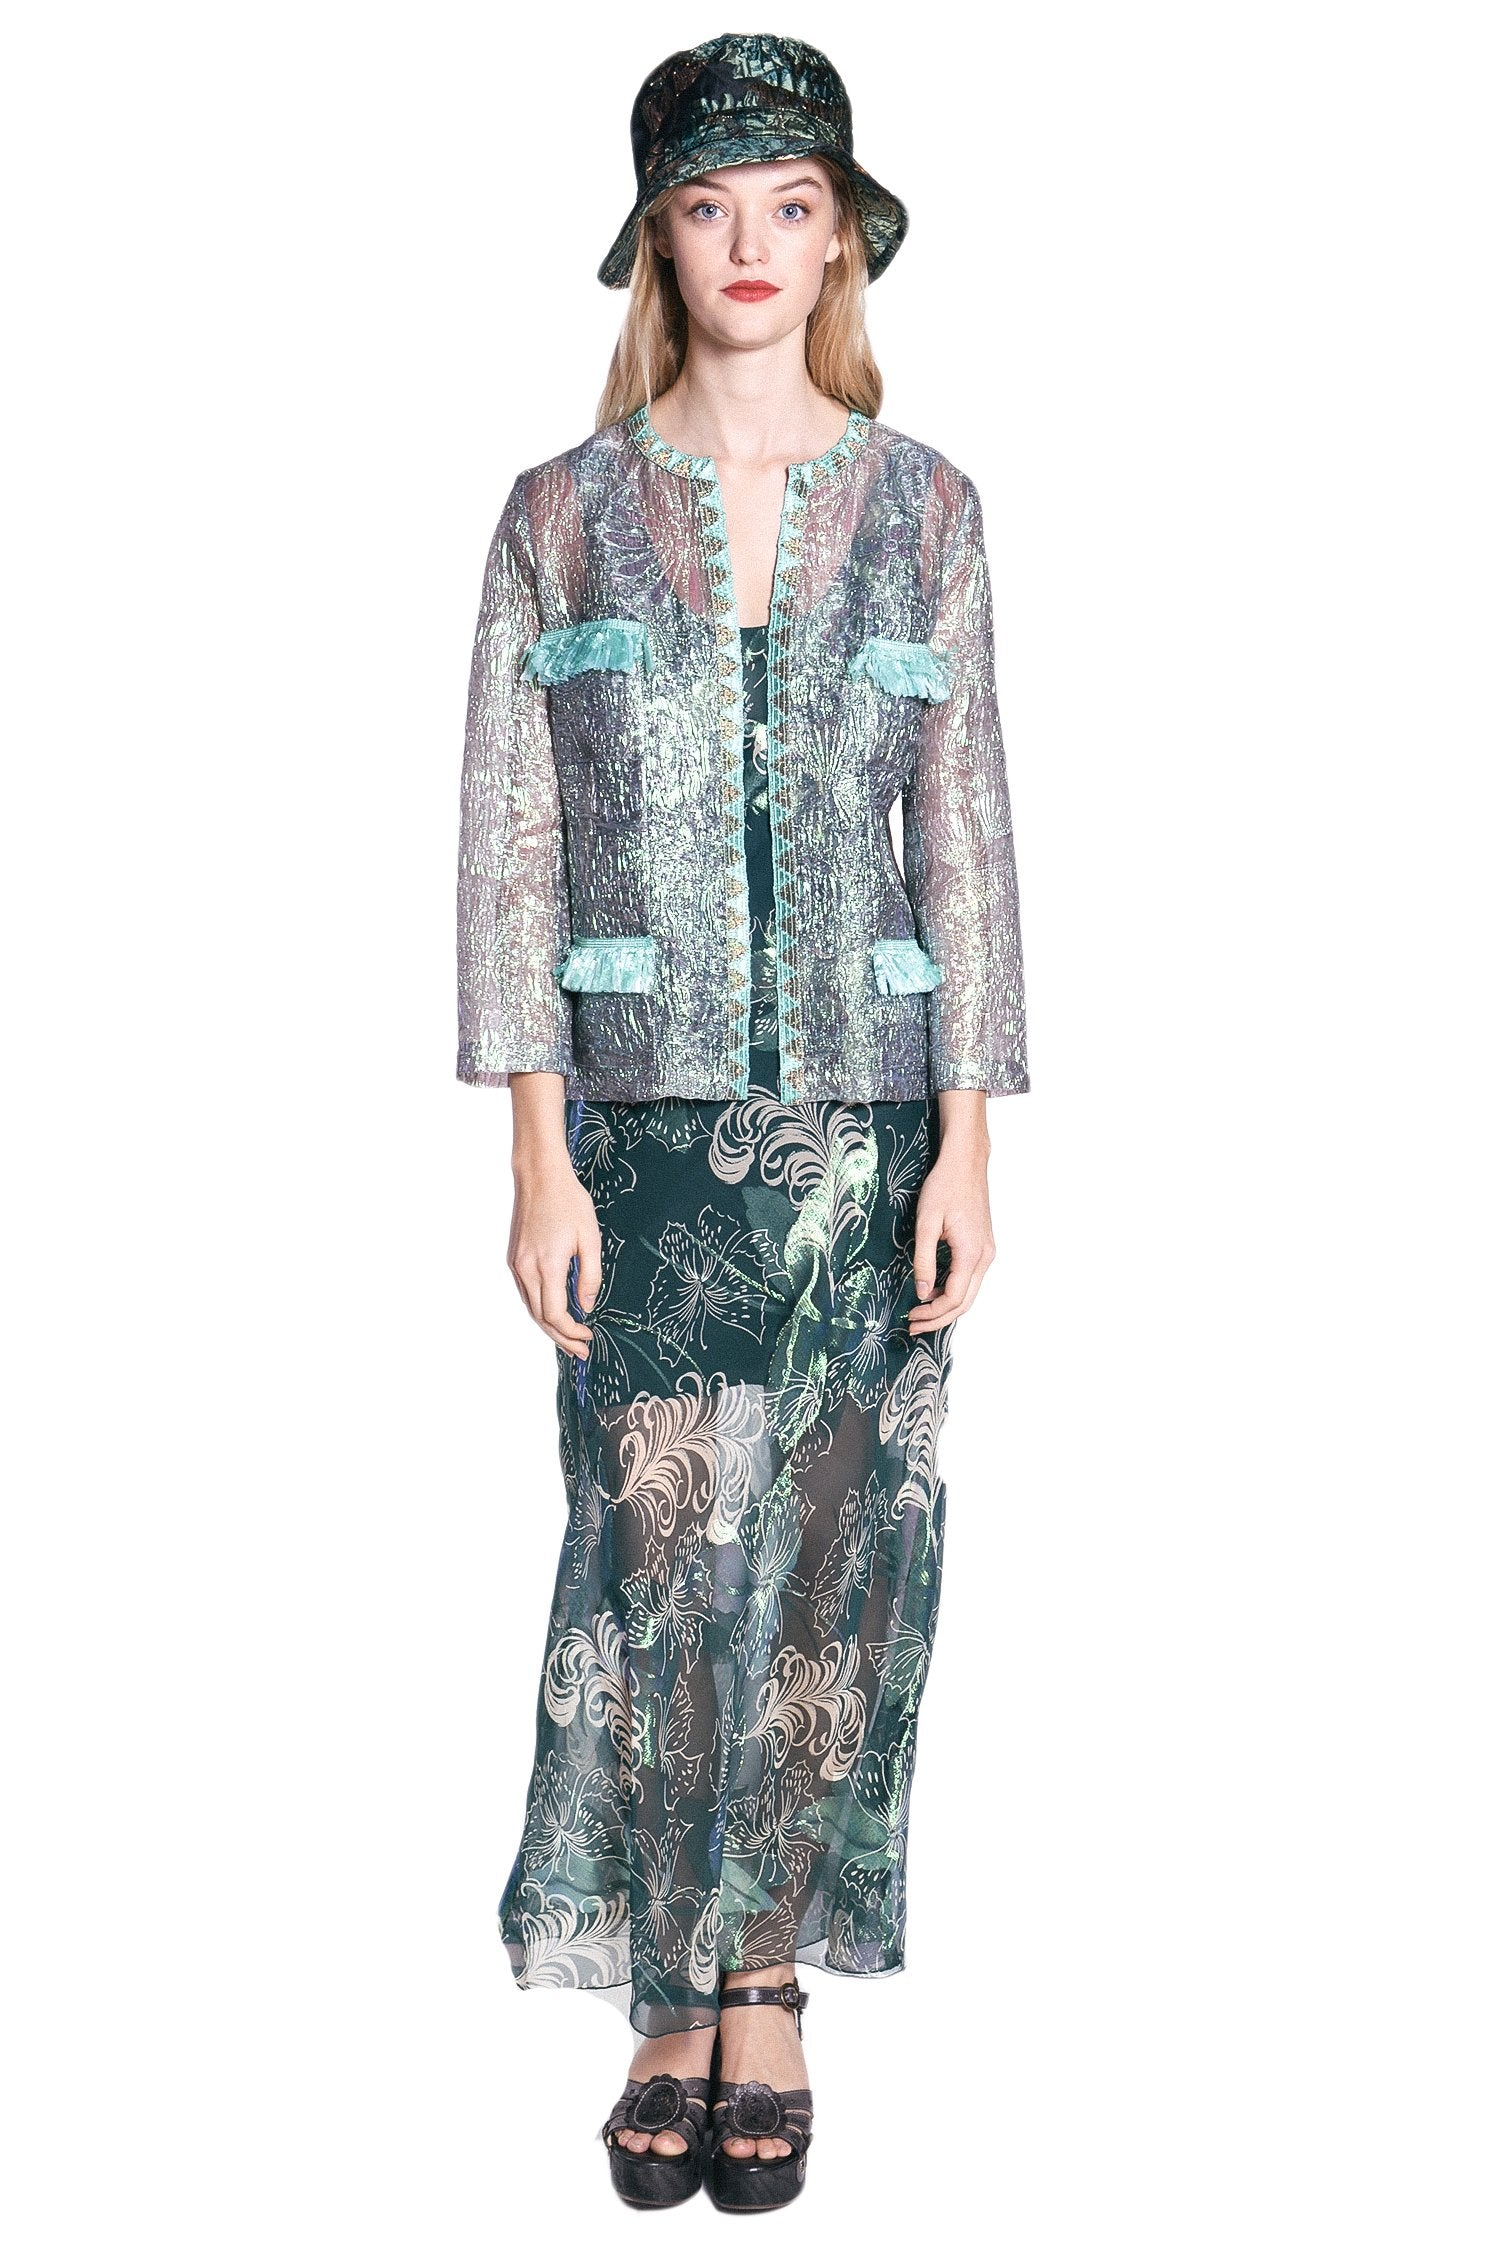 Mother of Pearl Iridescent Jacquard Jacket - Anna Sui